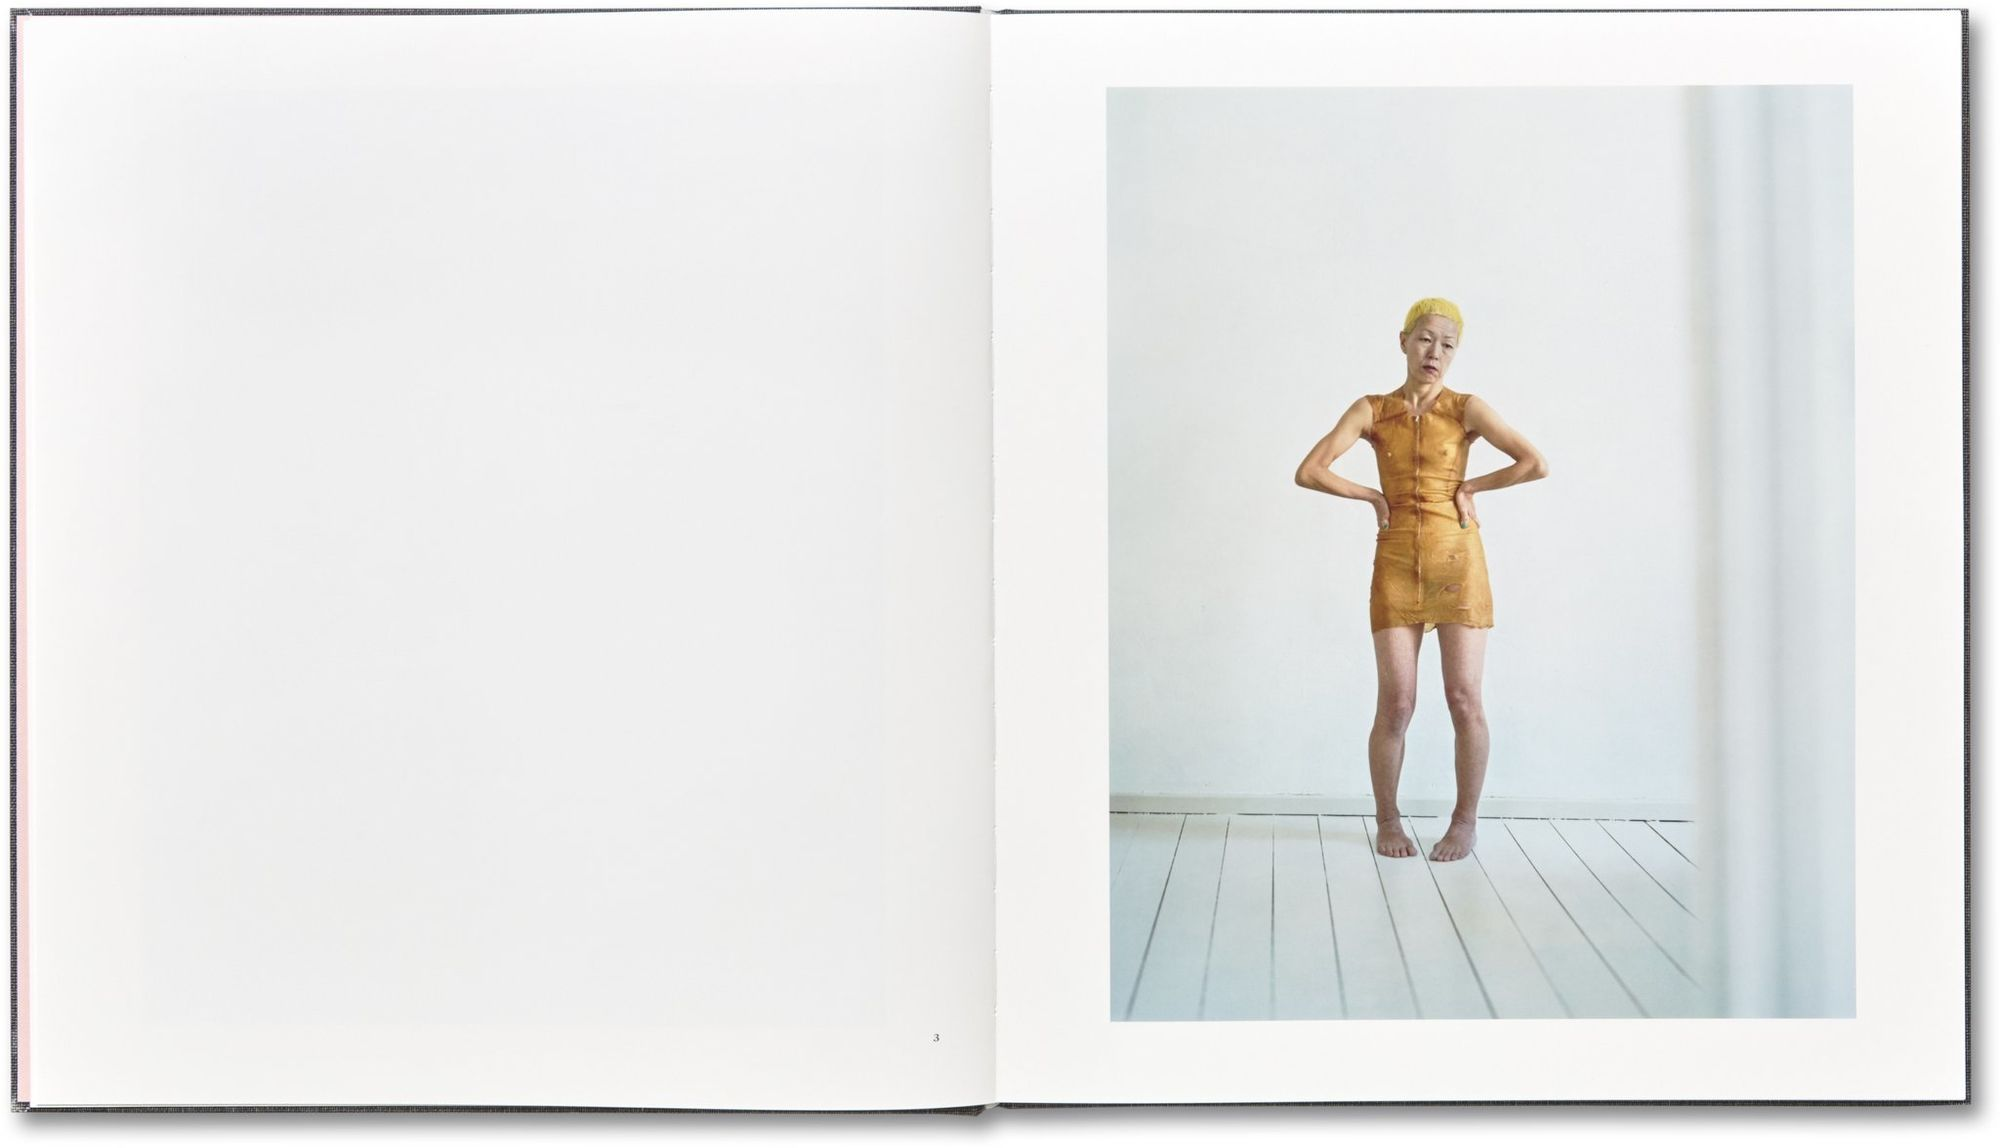 ALEC SOTH 'I Know How Furiously Your Heart is Beating' (2019) / MACK BOOKS